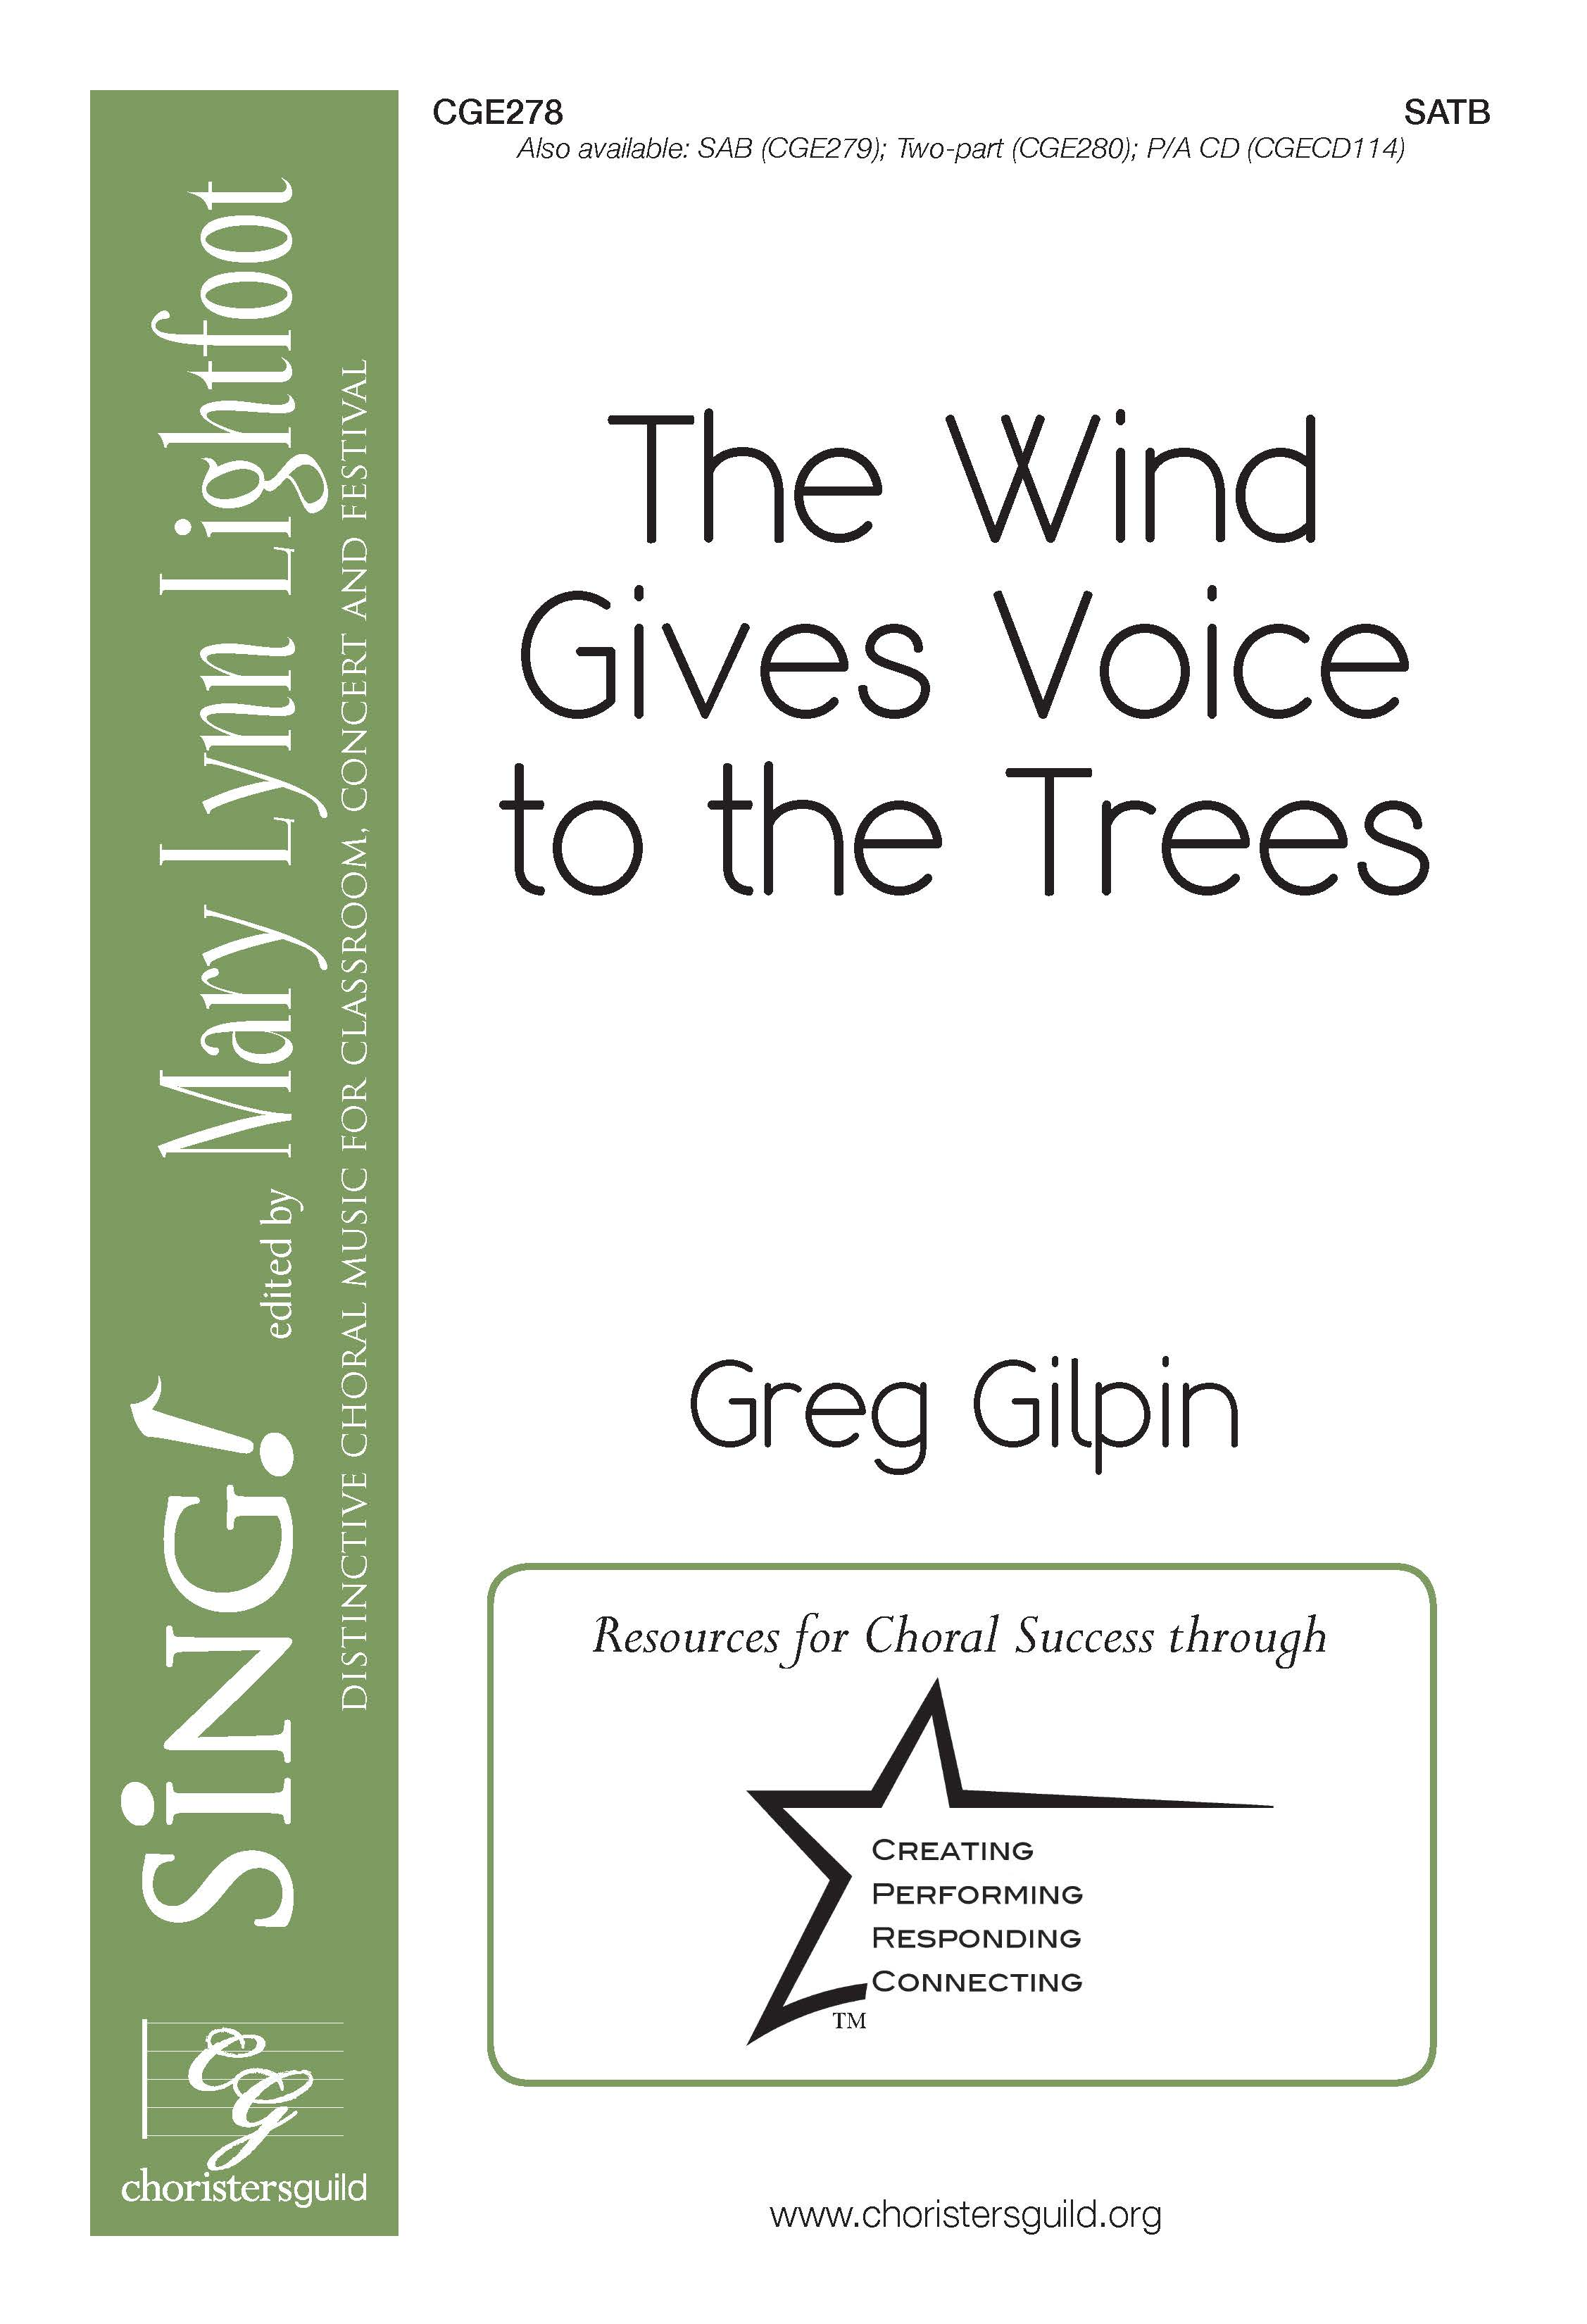 The Wind Gives Voice to the Trees SATB